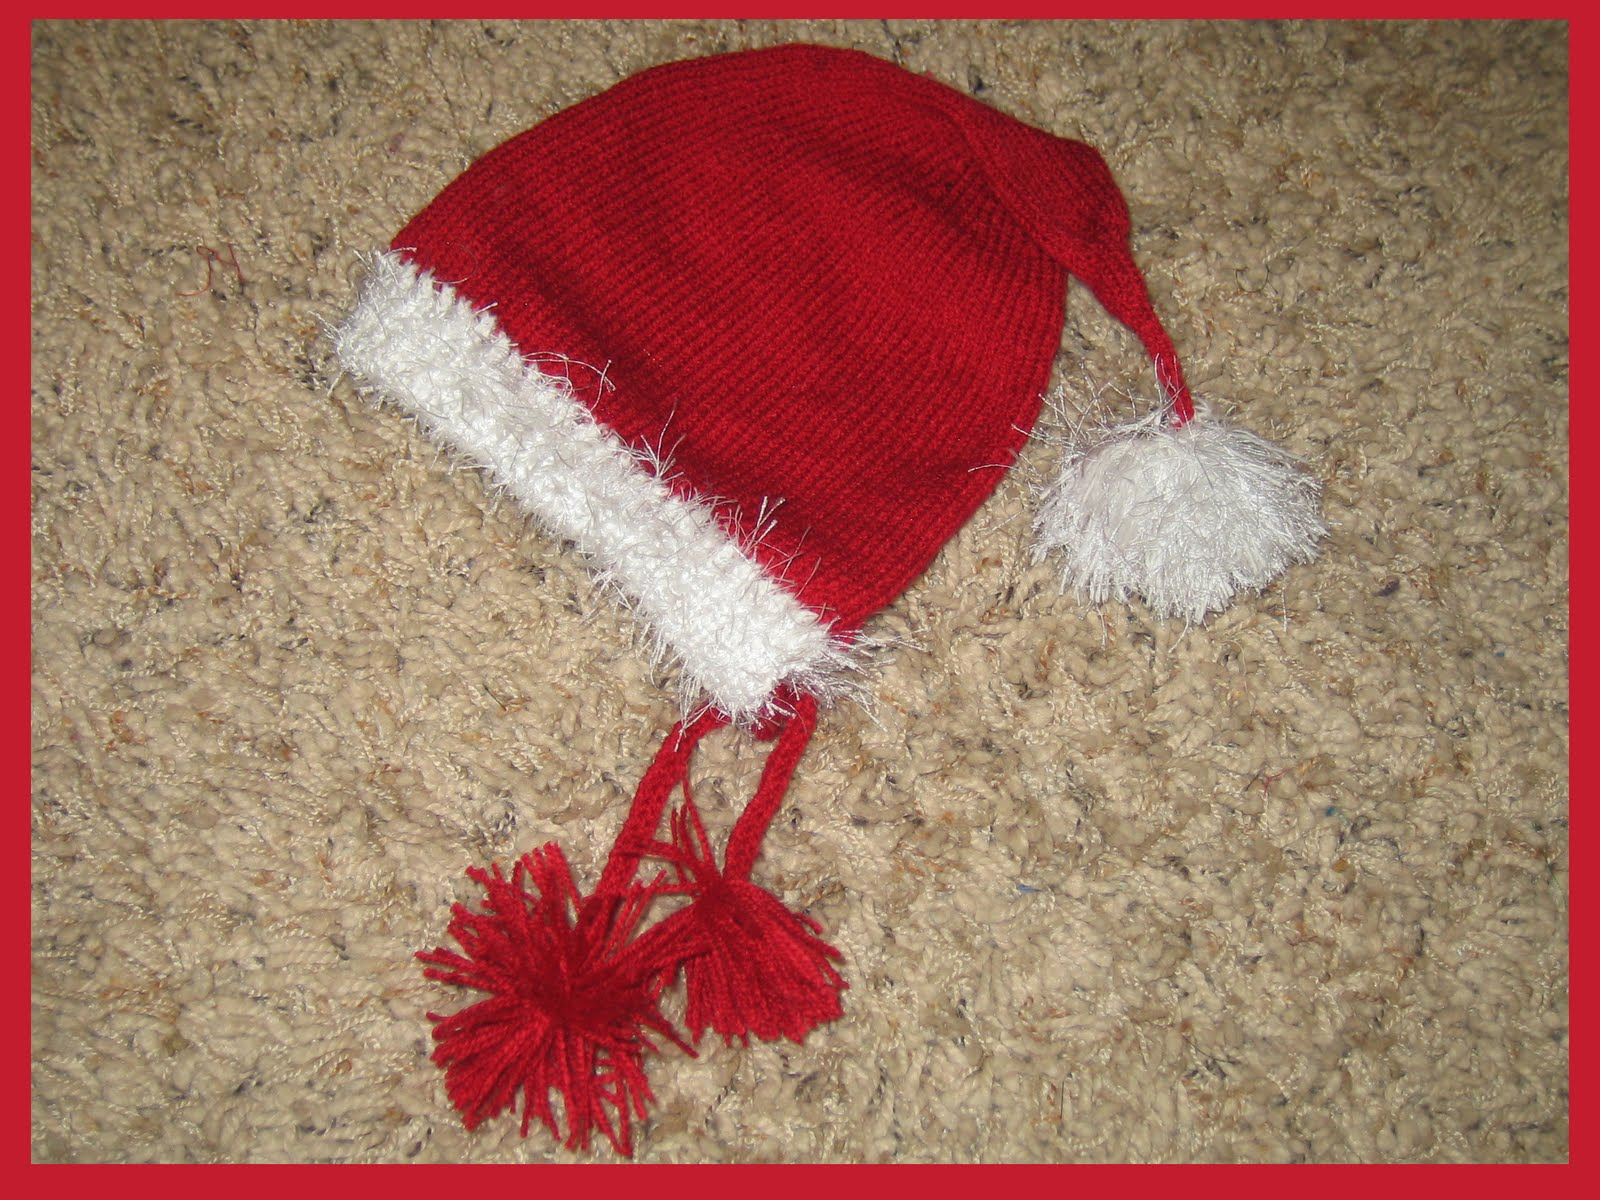 Marzipanknits: Free machine knit pattern for a baby Santa hat